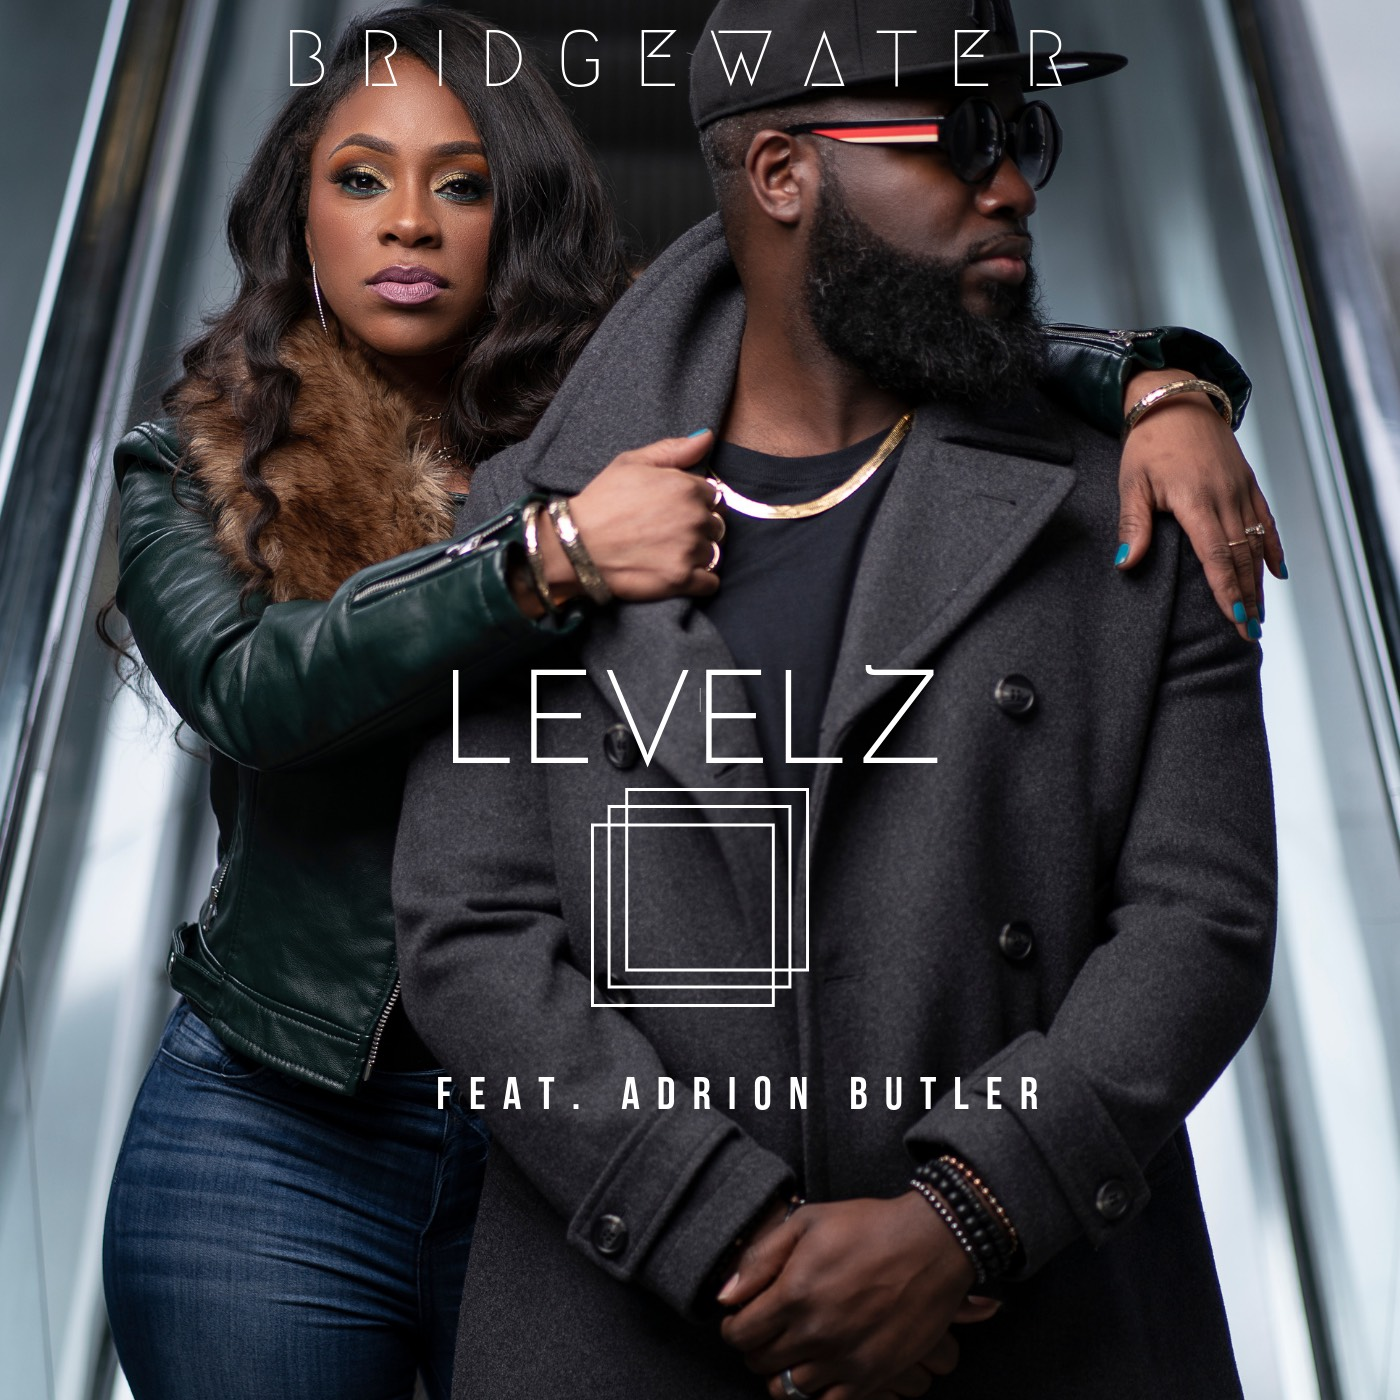 Bridgewater-Levelz Single Cover.jpeg